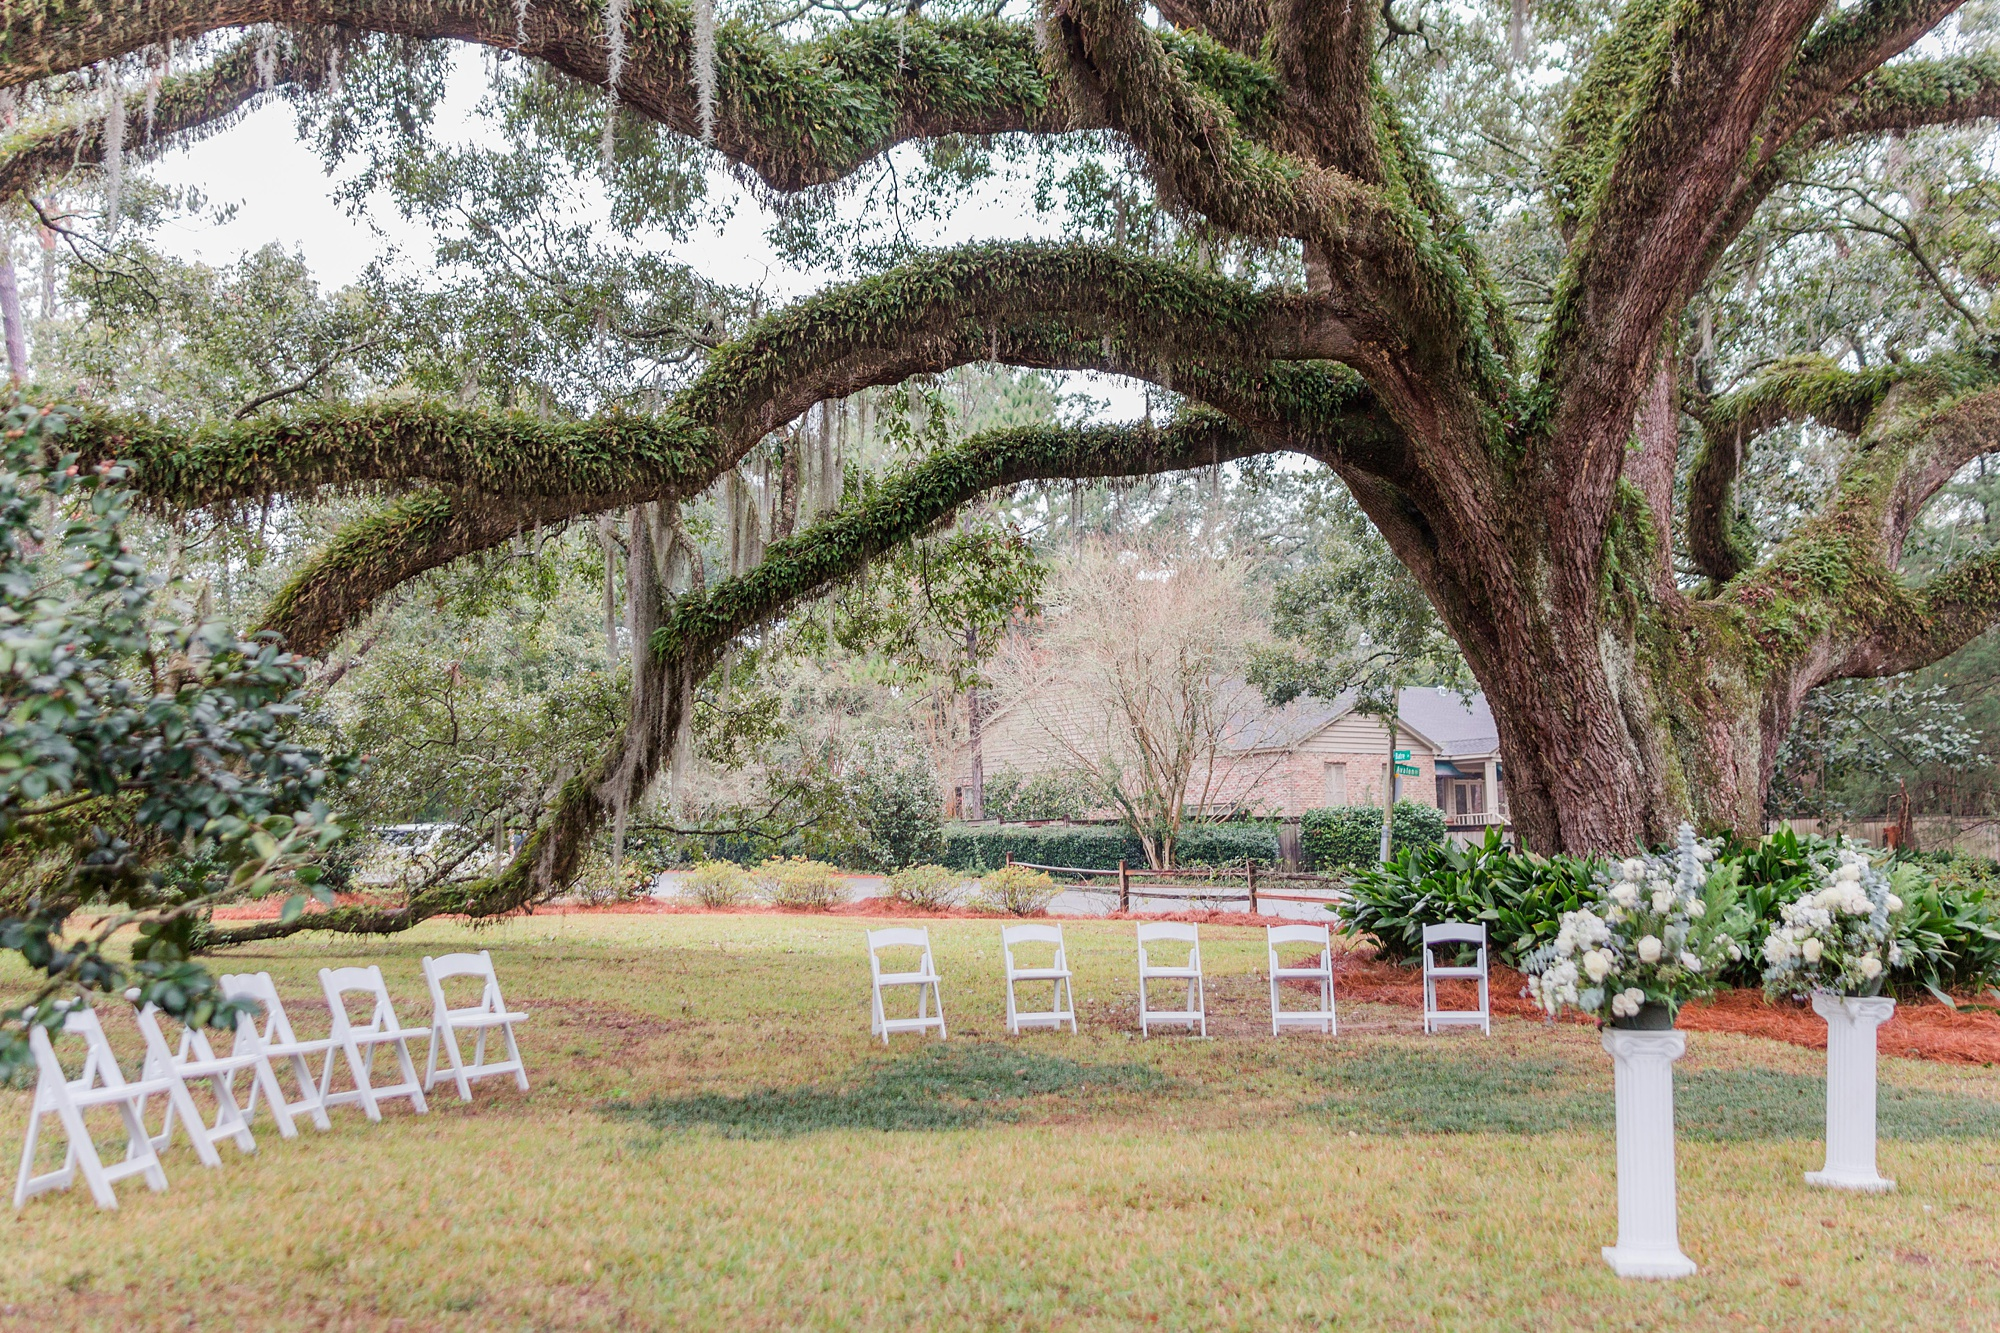 intimate Springhill wedding ceremony in front yard by tree with Spanish moss